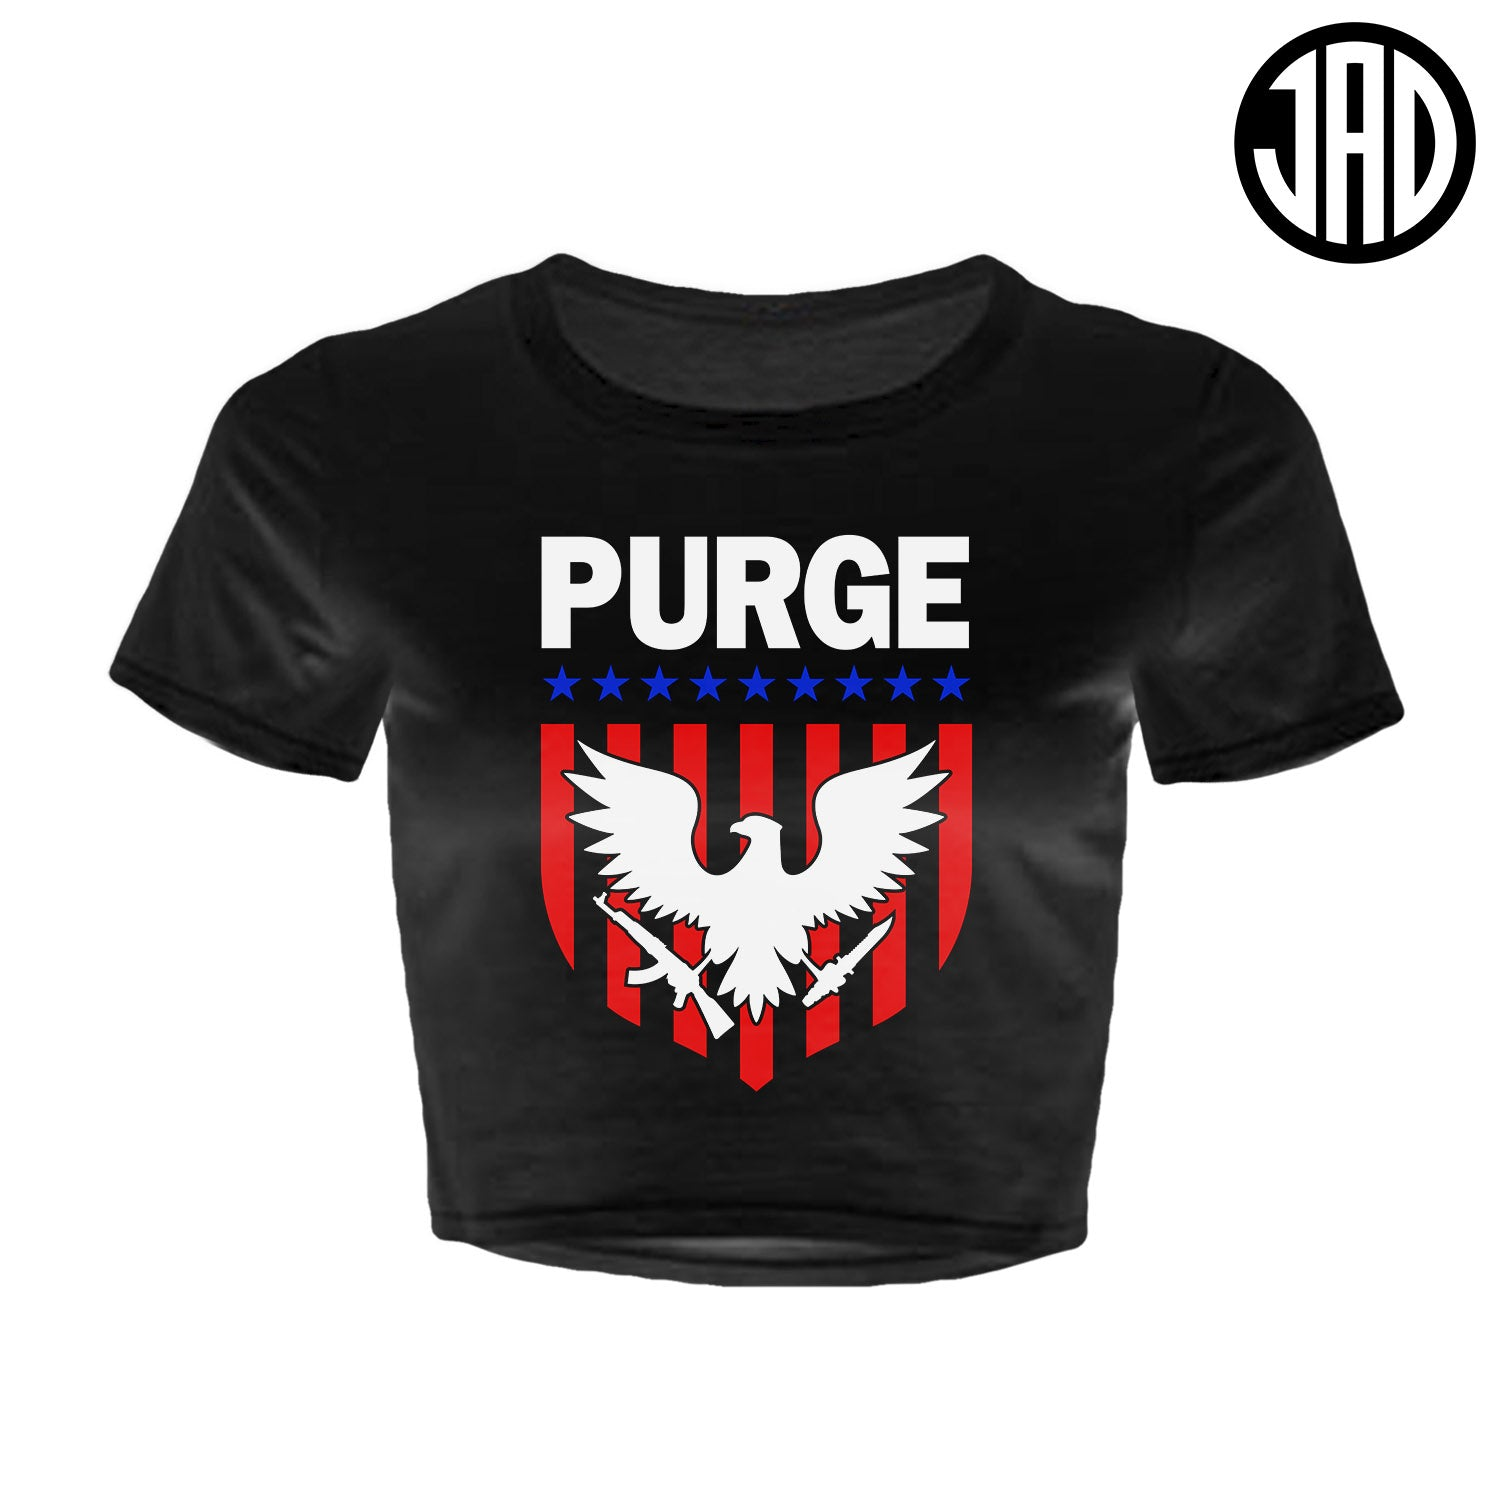 Purge Shield - Women's Crop Top